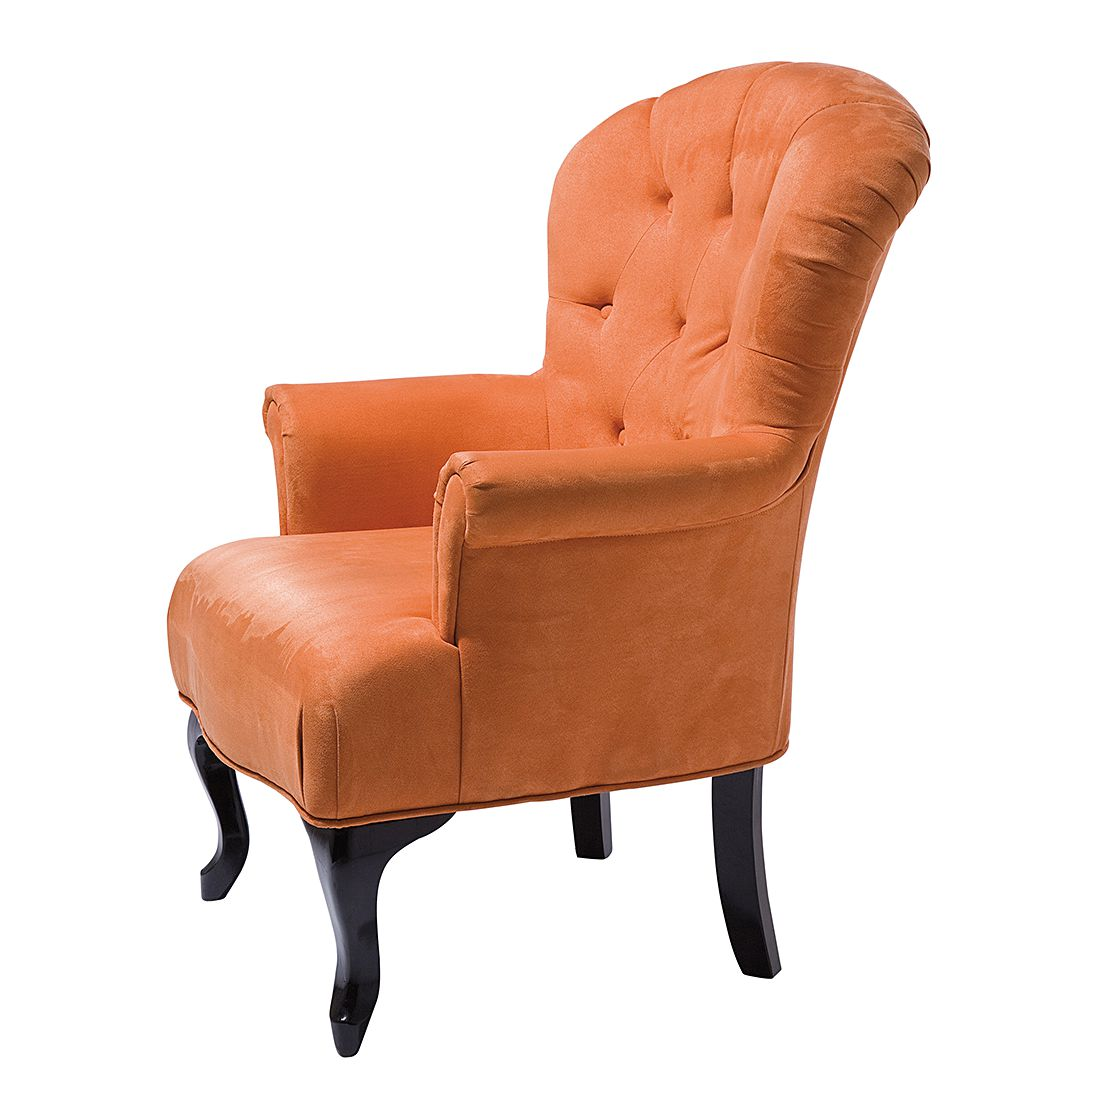 Velour Sessel Reinigen Sessel Cafehaus Velours Orange Der Marke Kare Design